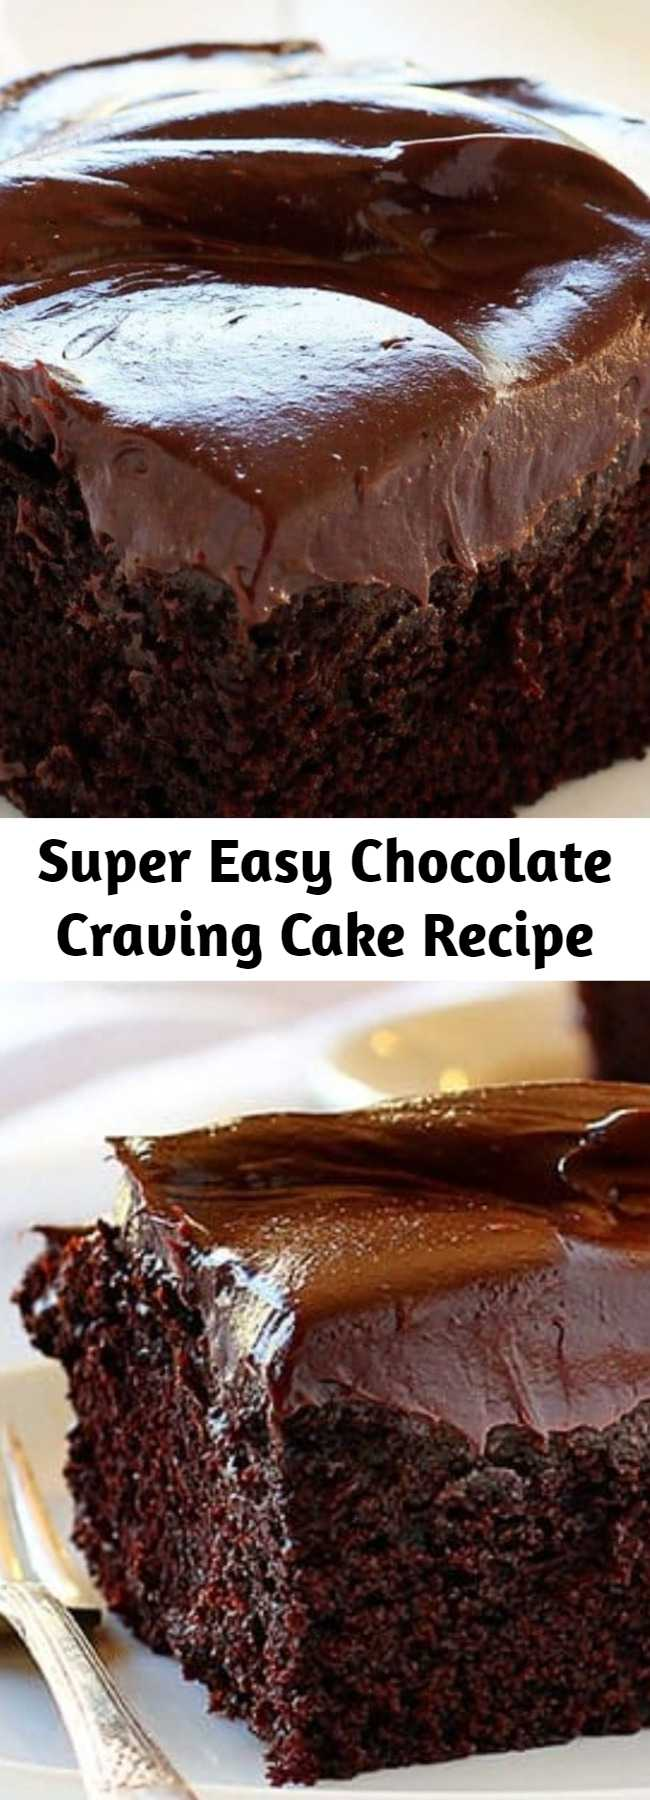 Super Easy Chocolate Craving Cake Recipe - This homemade Valentine treat is one of the best chocolate cake recipes! Chocolate Craving Cake is what dreams are made of - decadent, rich chocolate flavor paired with chocolate frosting. A satisfying dessert without the fuss! Save this Valentine's Day food idea!